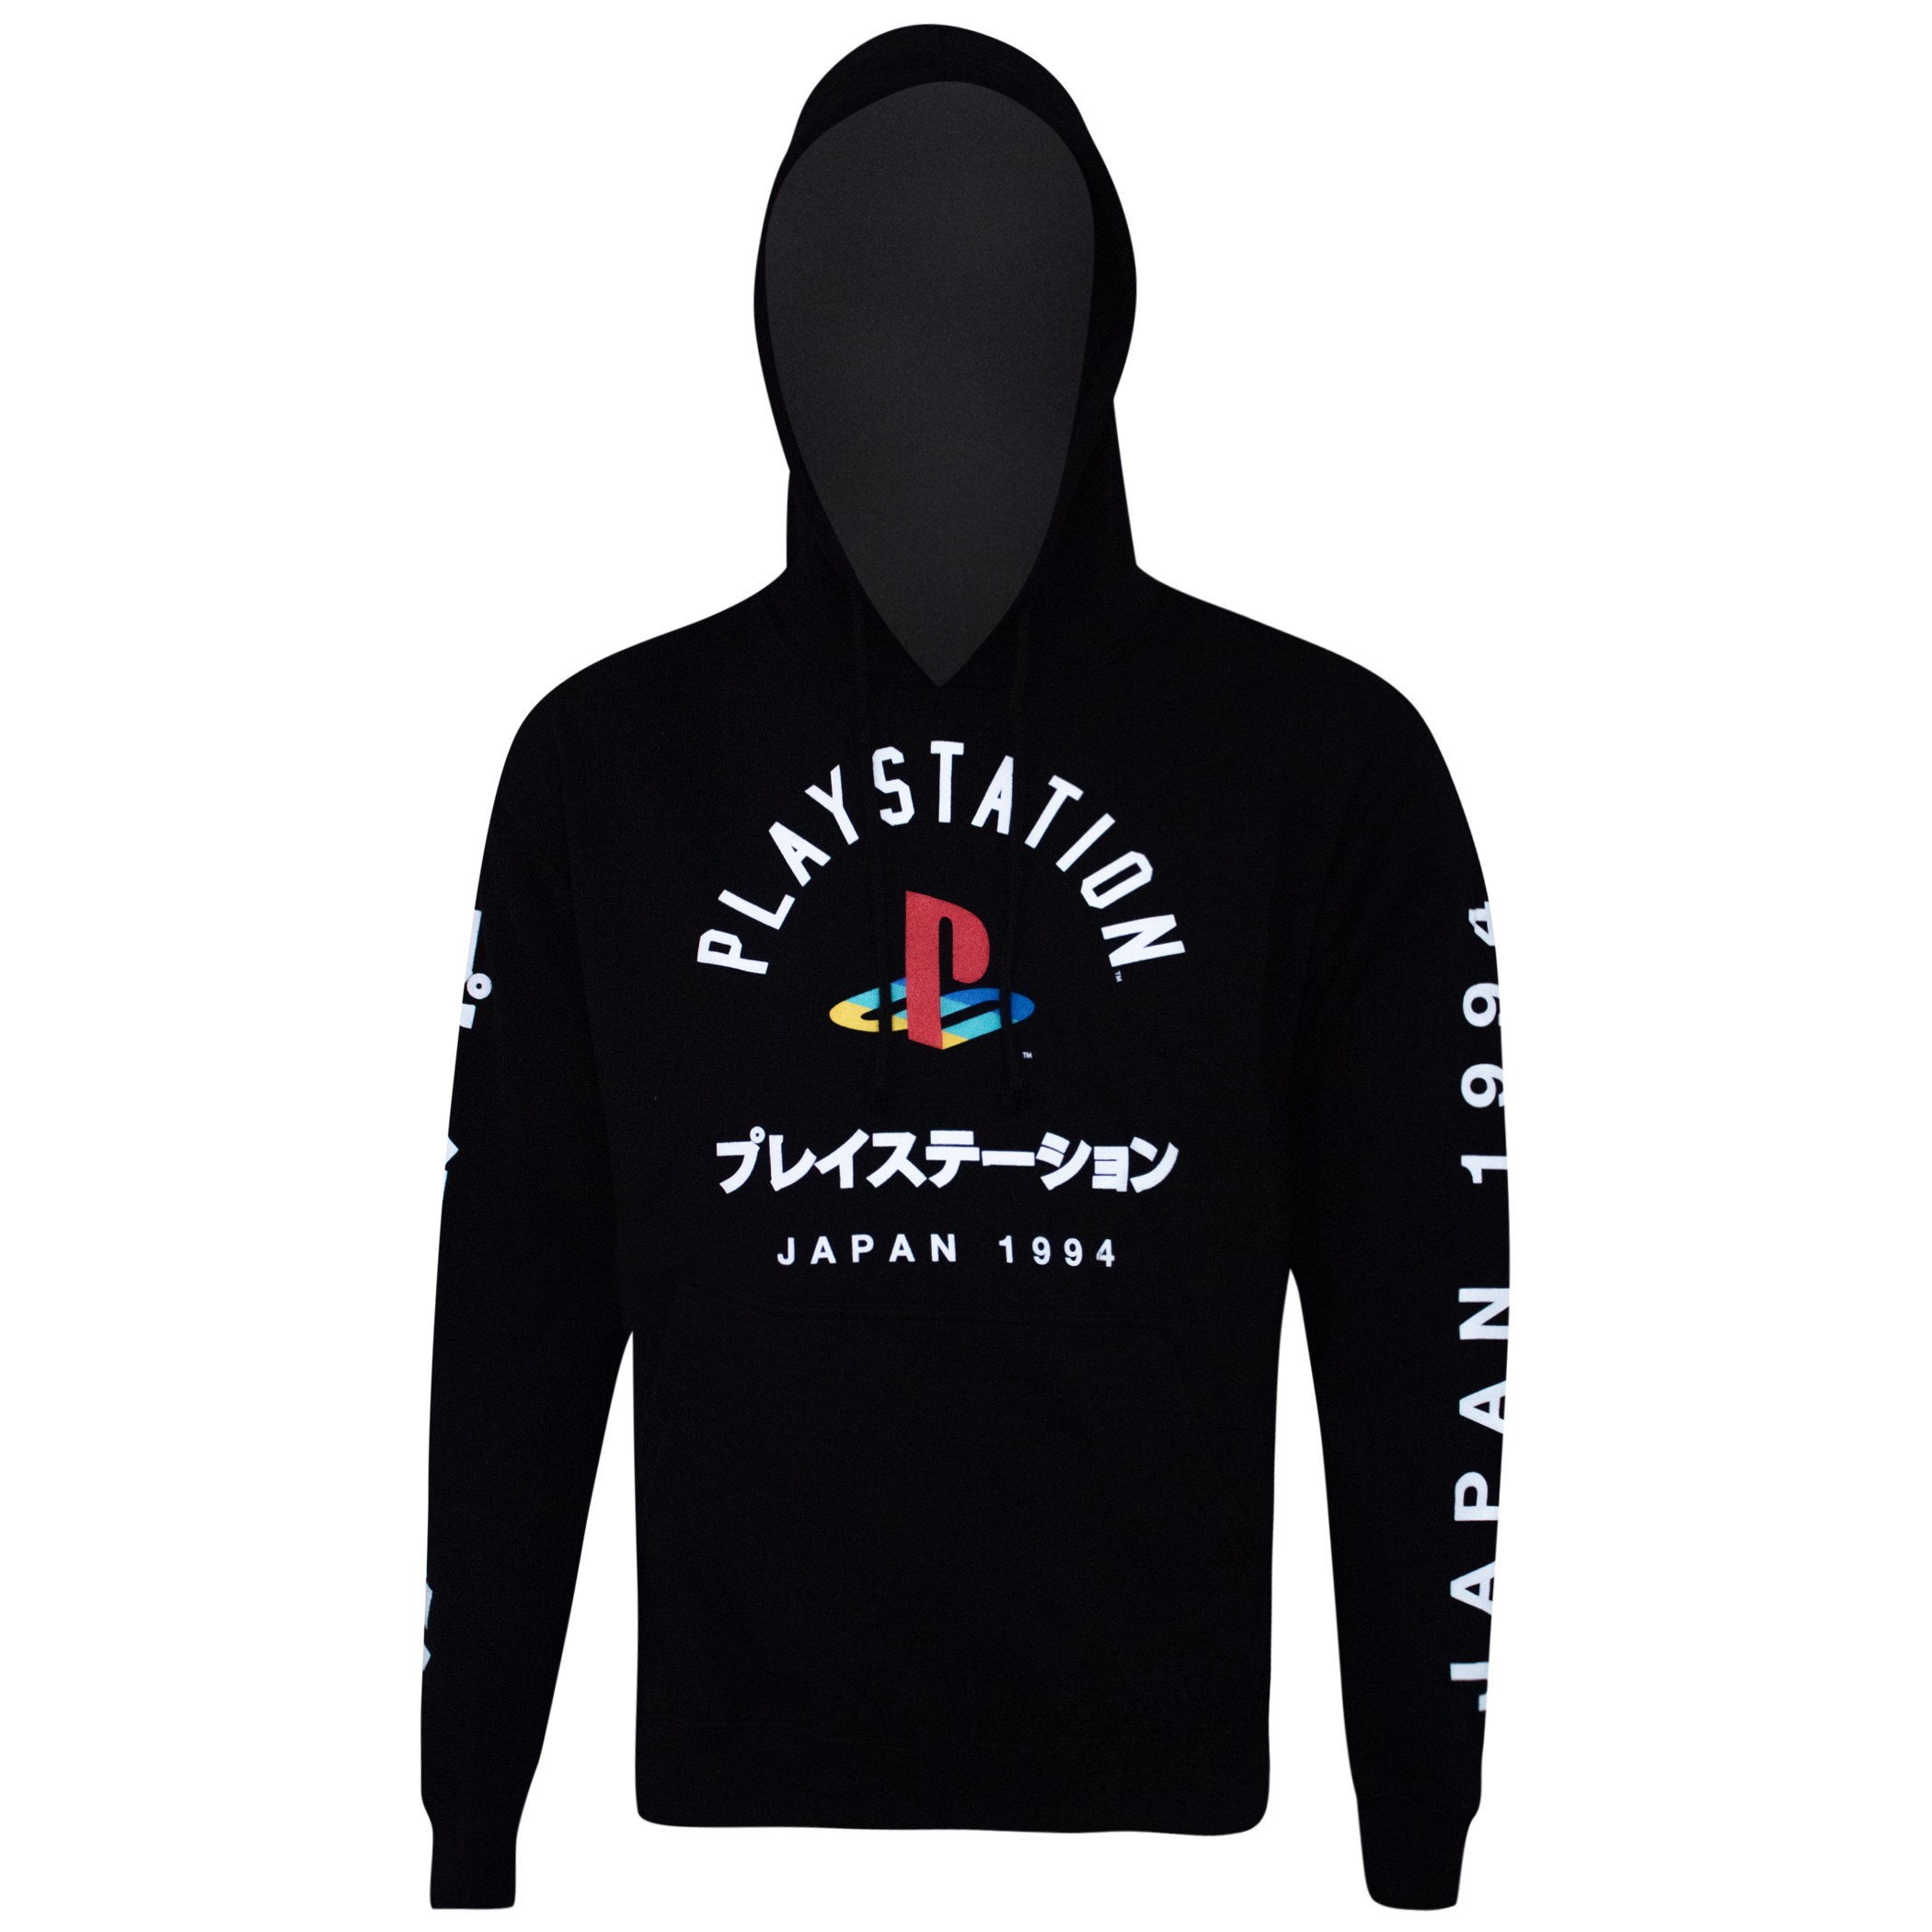 Playstation Japanese Logo Black Hoodie Sweatshirt